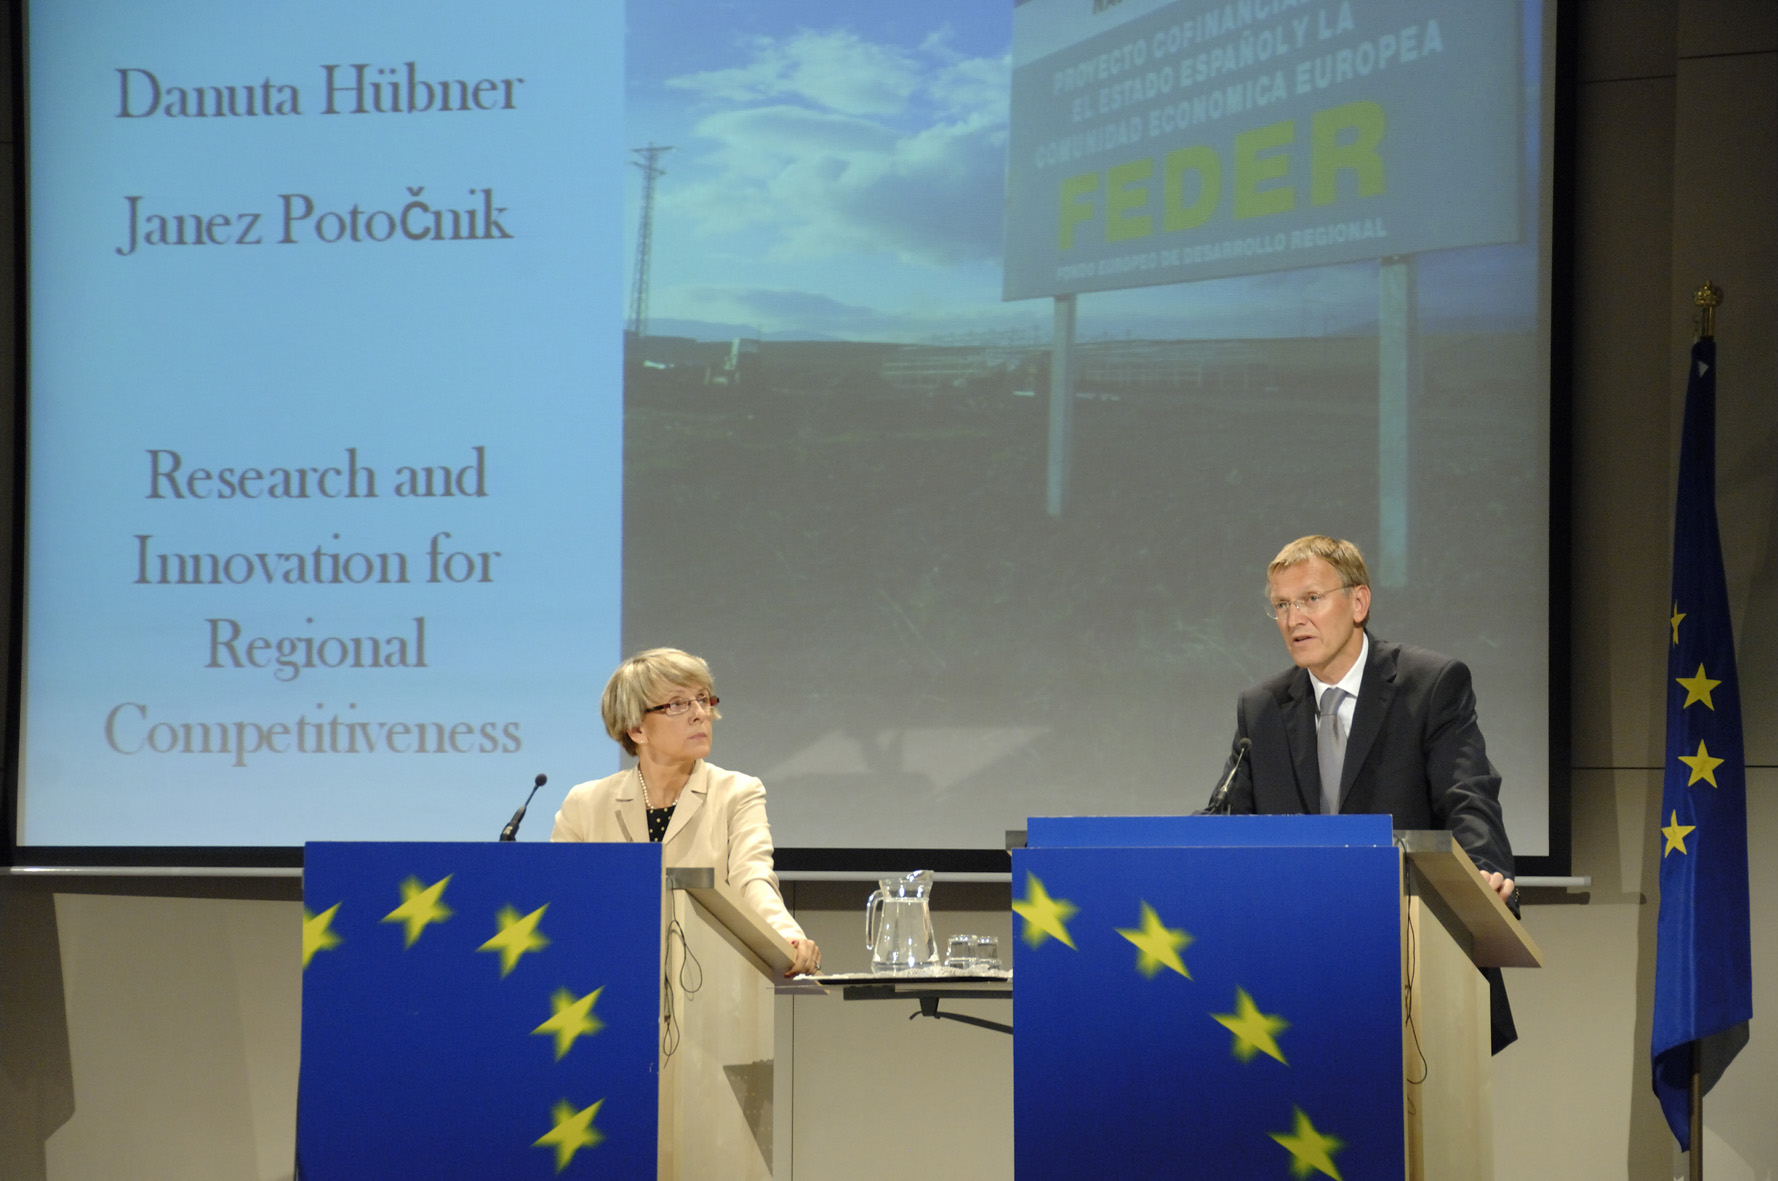 Press conference by Danuta Hübner and Janez Potocnik on the European regions that are competitive through research and innovation